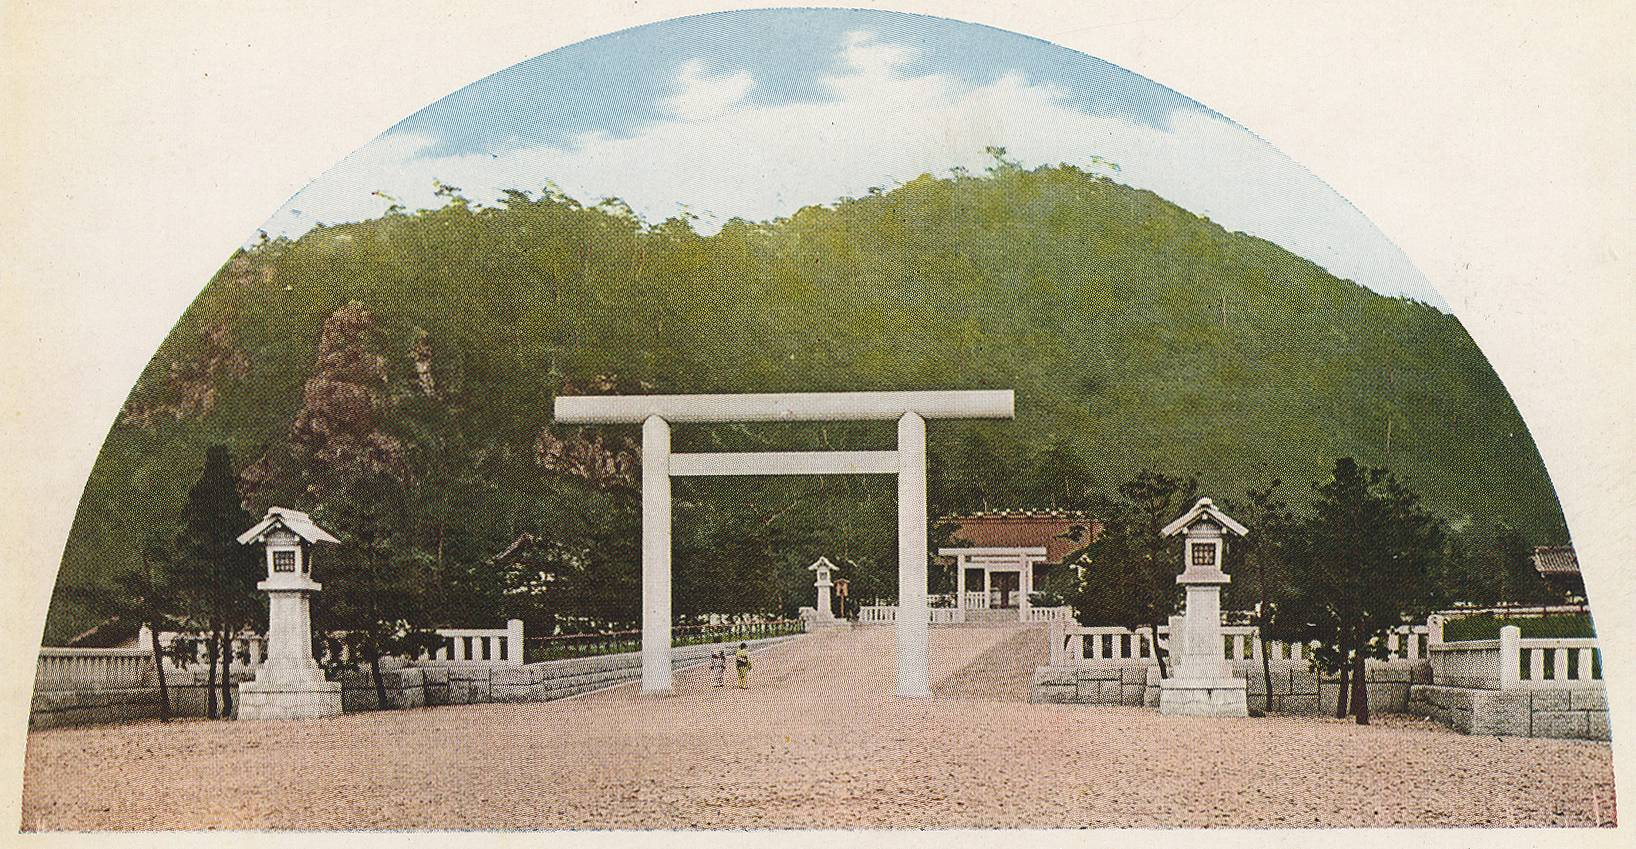 """The Shinto shrine that protects Korea."" From a series of postcards dedicated to famous spots in Keijō (as Seoul was known during Japanese colonial rule during the first half of the twentieth century)."